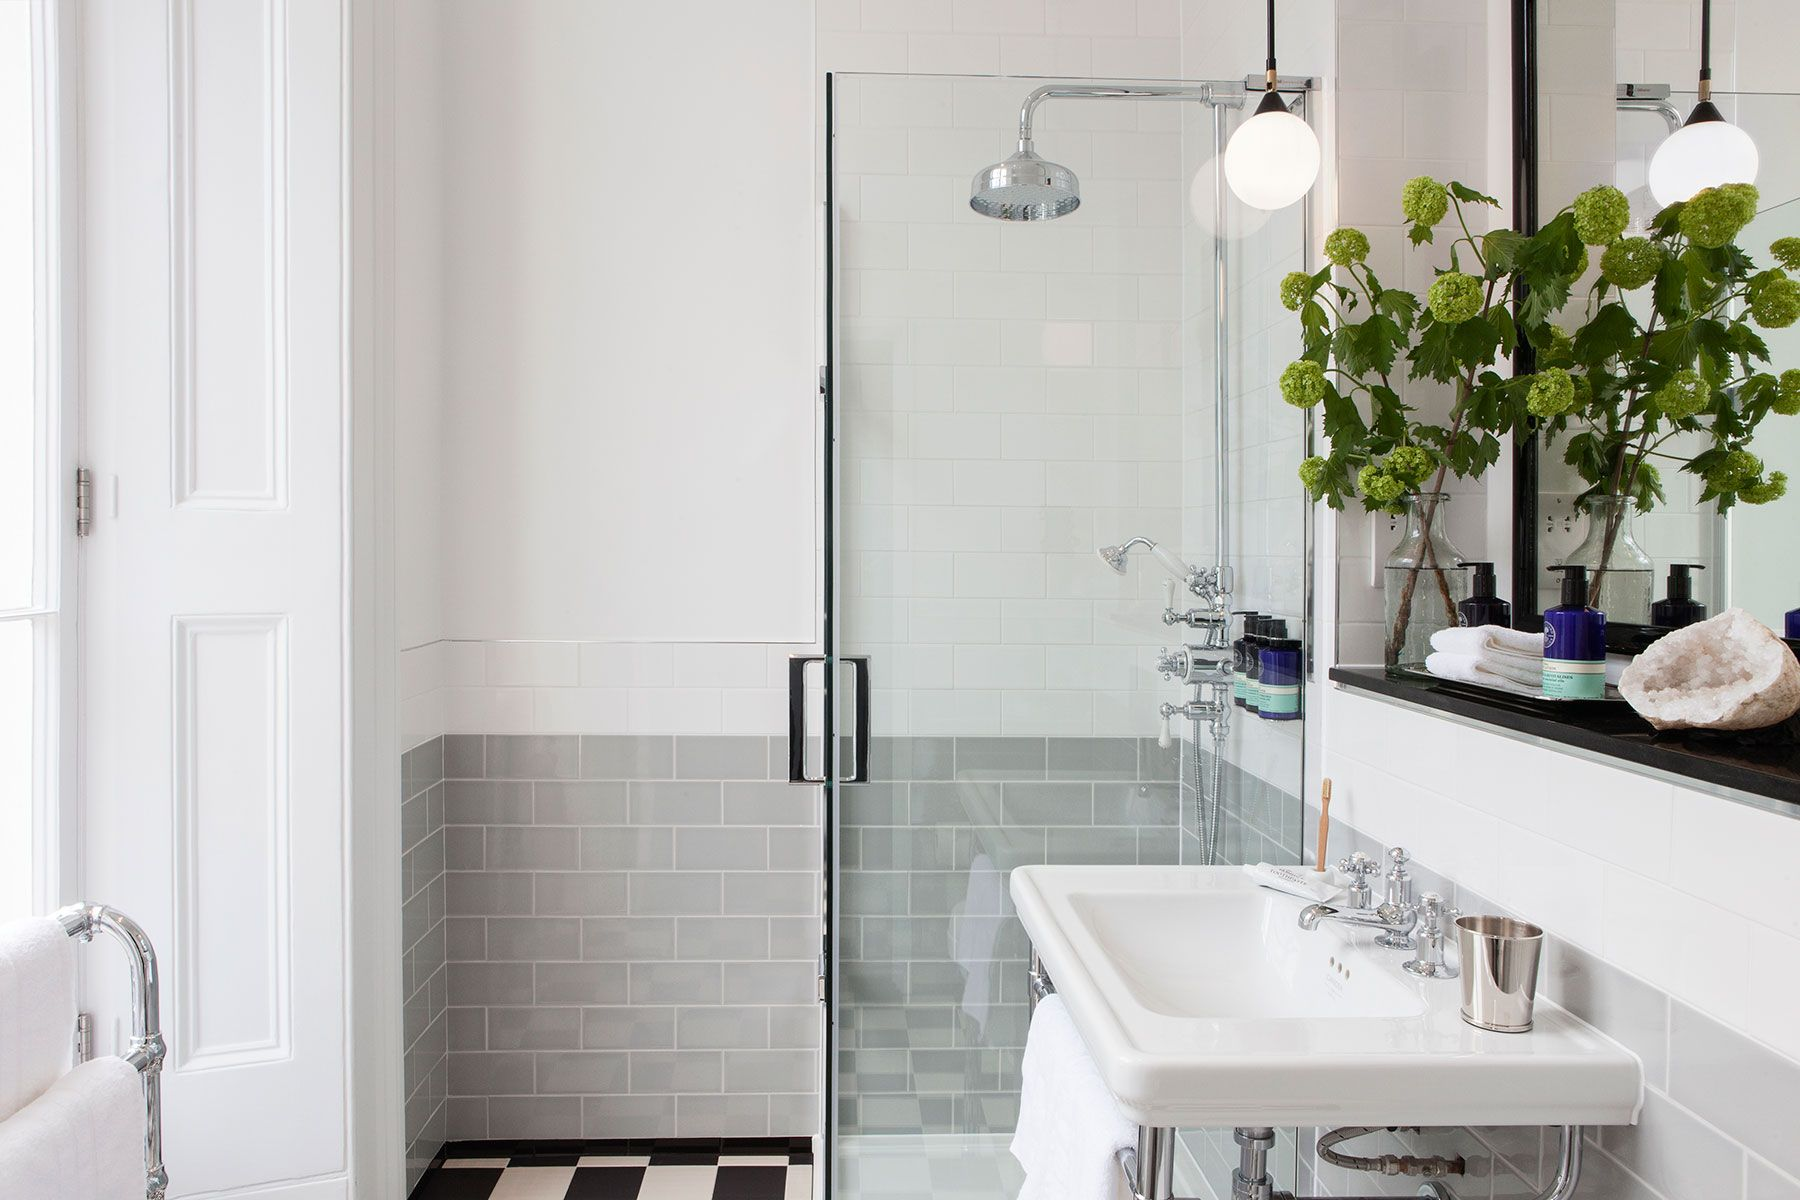 The Laslett Hotel | Luxury, Bathroom accessories and Ranges